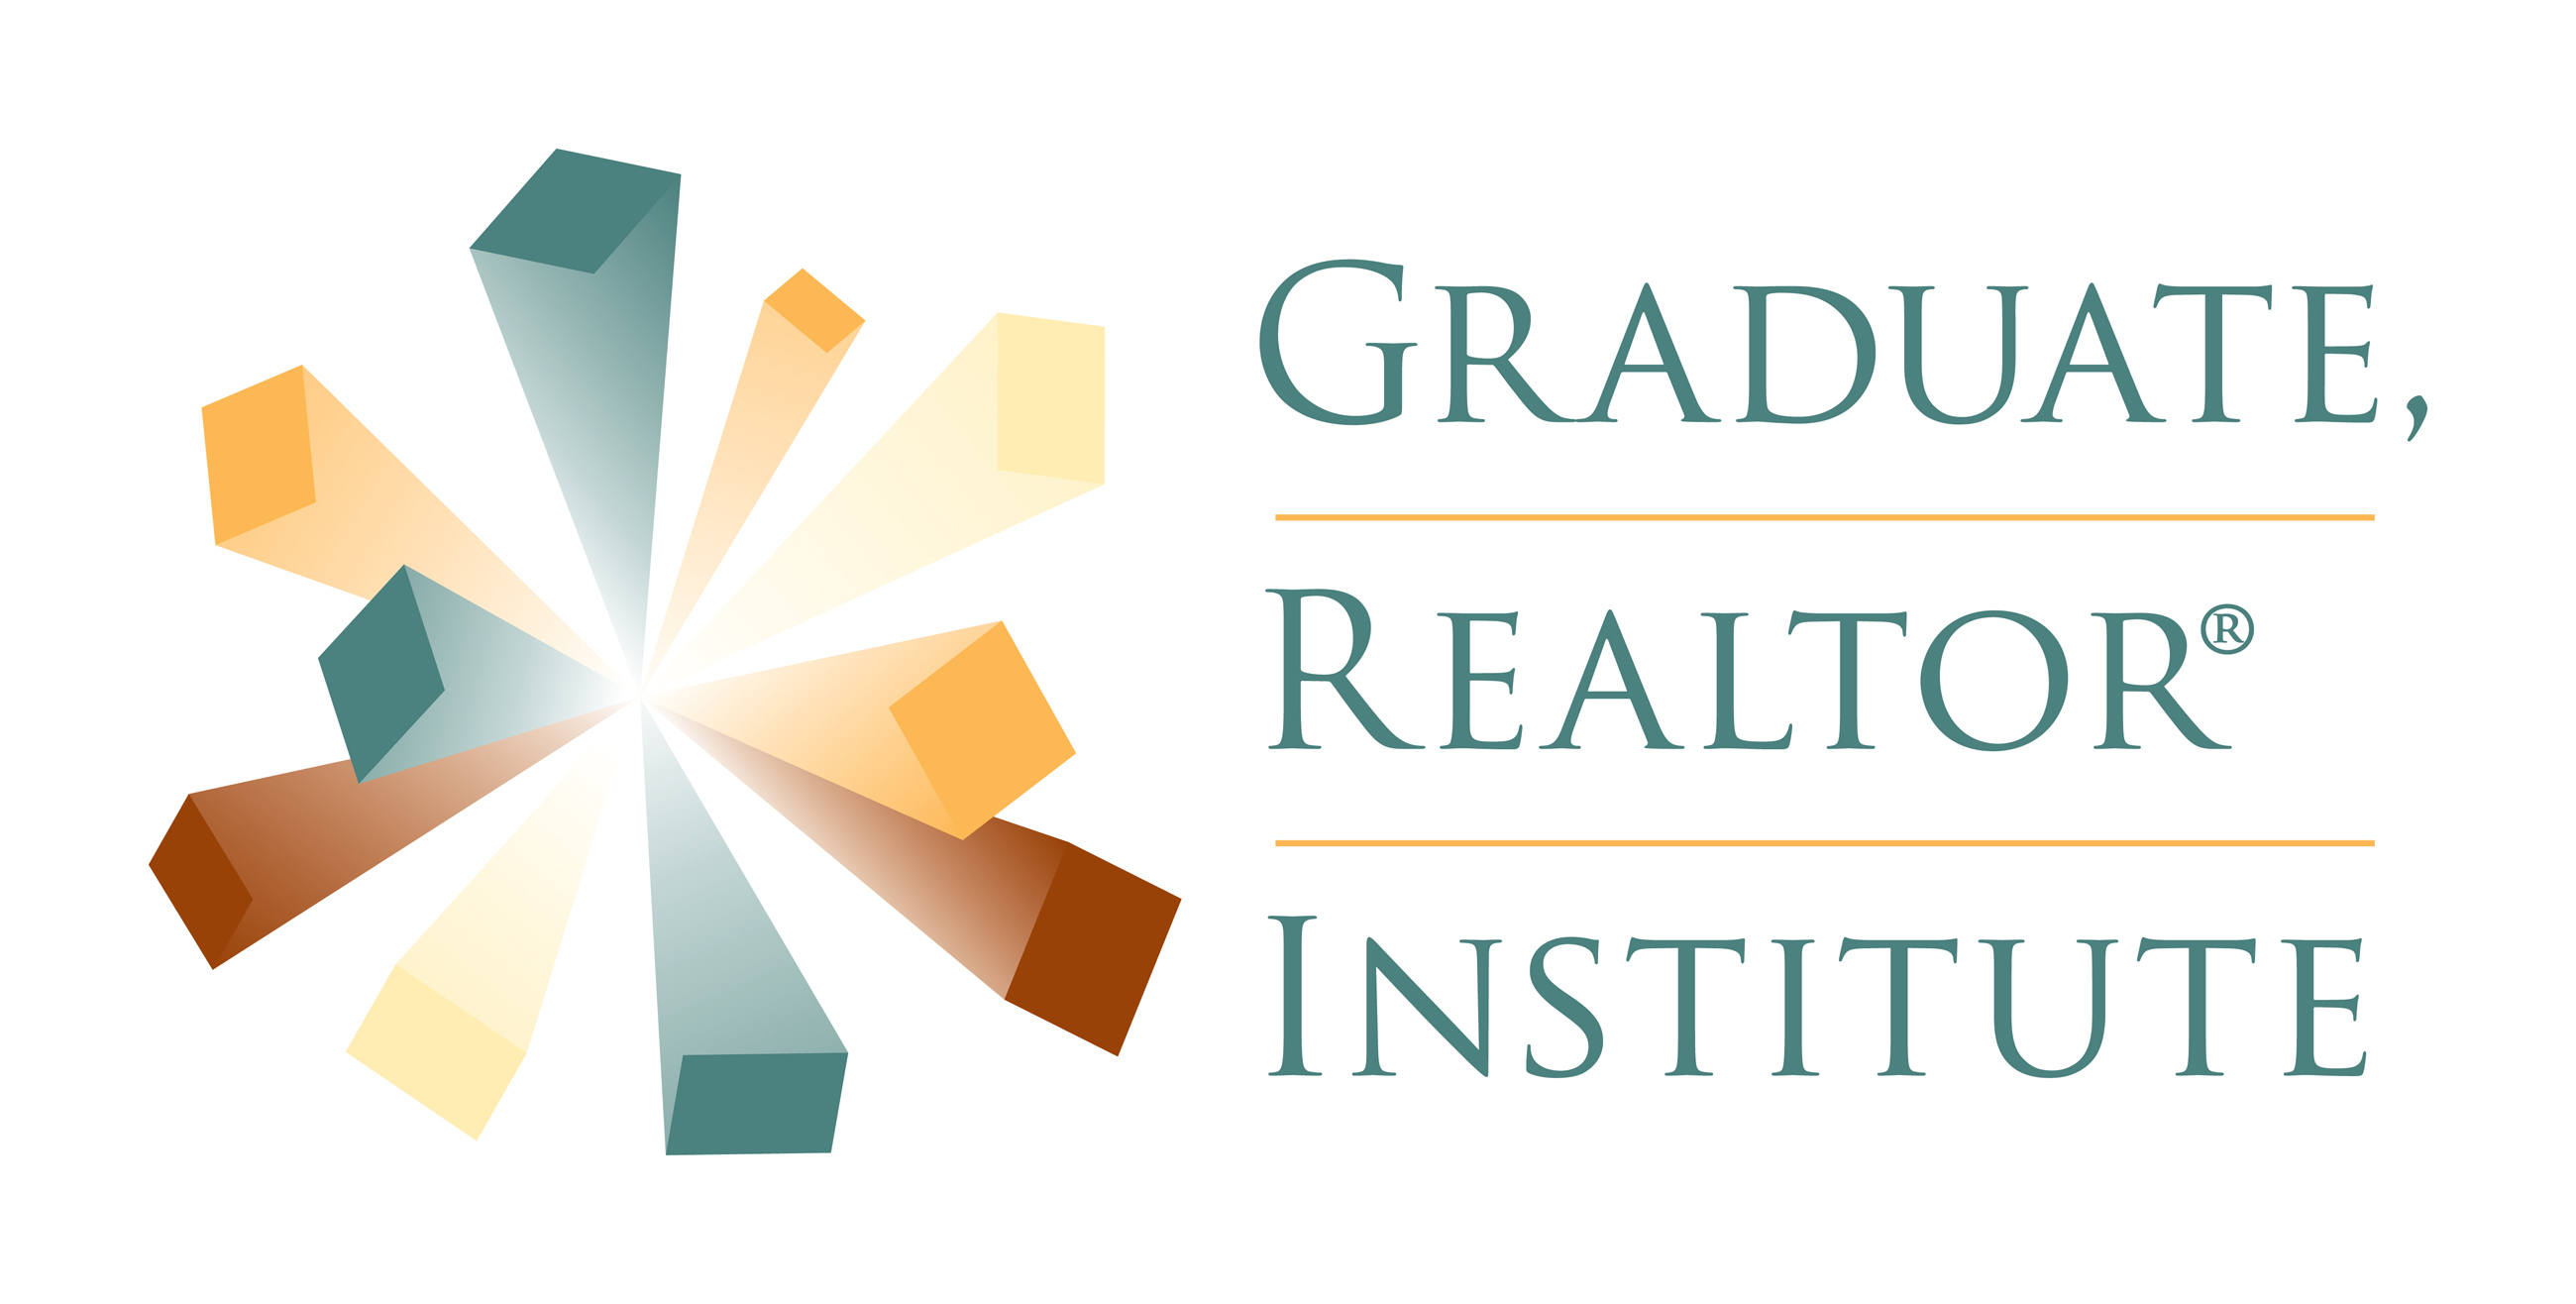 What does gri mean in real estate graduate realtor institute wondering what the gri acronym means in real estate biocorpaavc Images